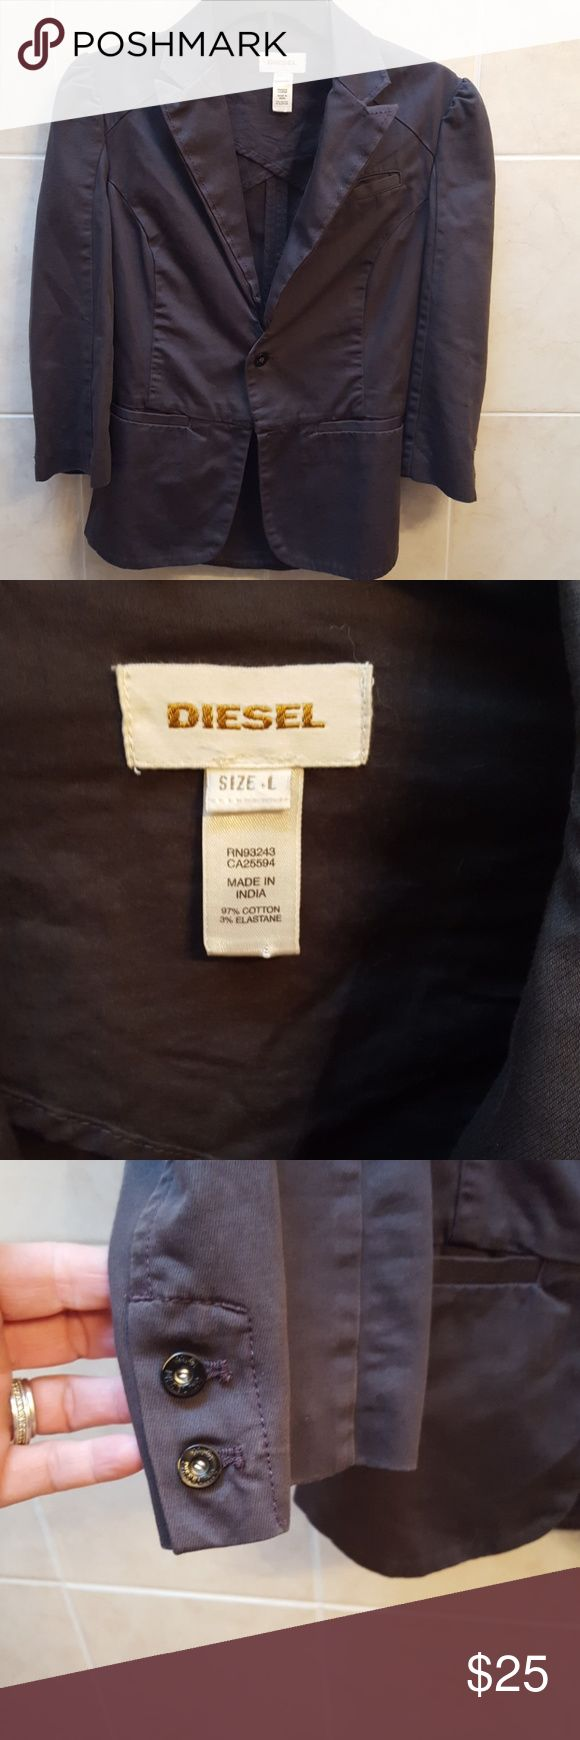 DIESEL blazer/jacket DIESEL blazer/jacket, Euc, size L great with jeans Diesel Jackets & Coats Blazers